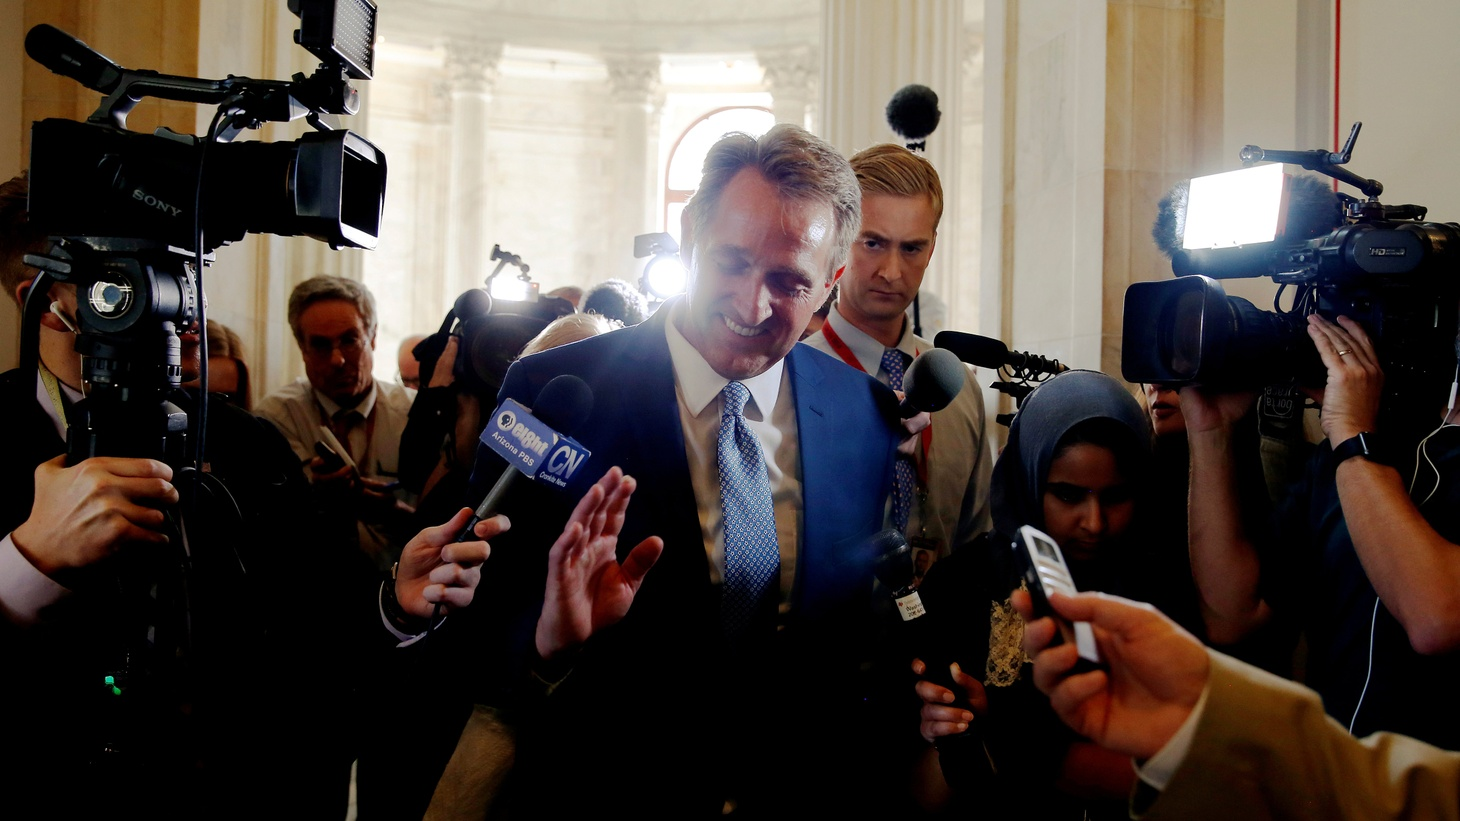 Two Republican Senators — Bob Corker of Tennessee, and now Jeff Flake of Arizona — say they won't run for re-election next year. It's all about what they call President Trump's outrageous behavior. Is the president losing his party, or are the dissidents conceding he's running the show?